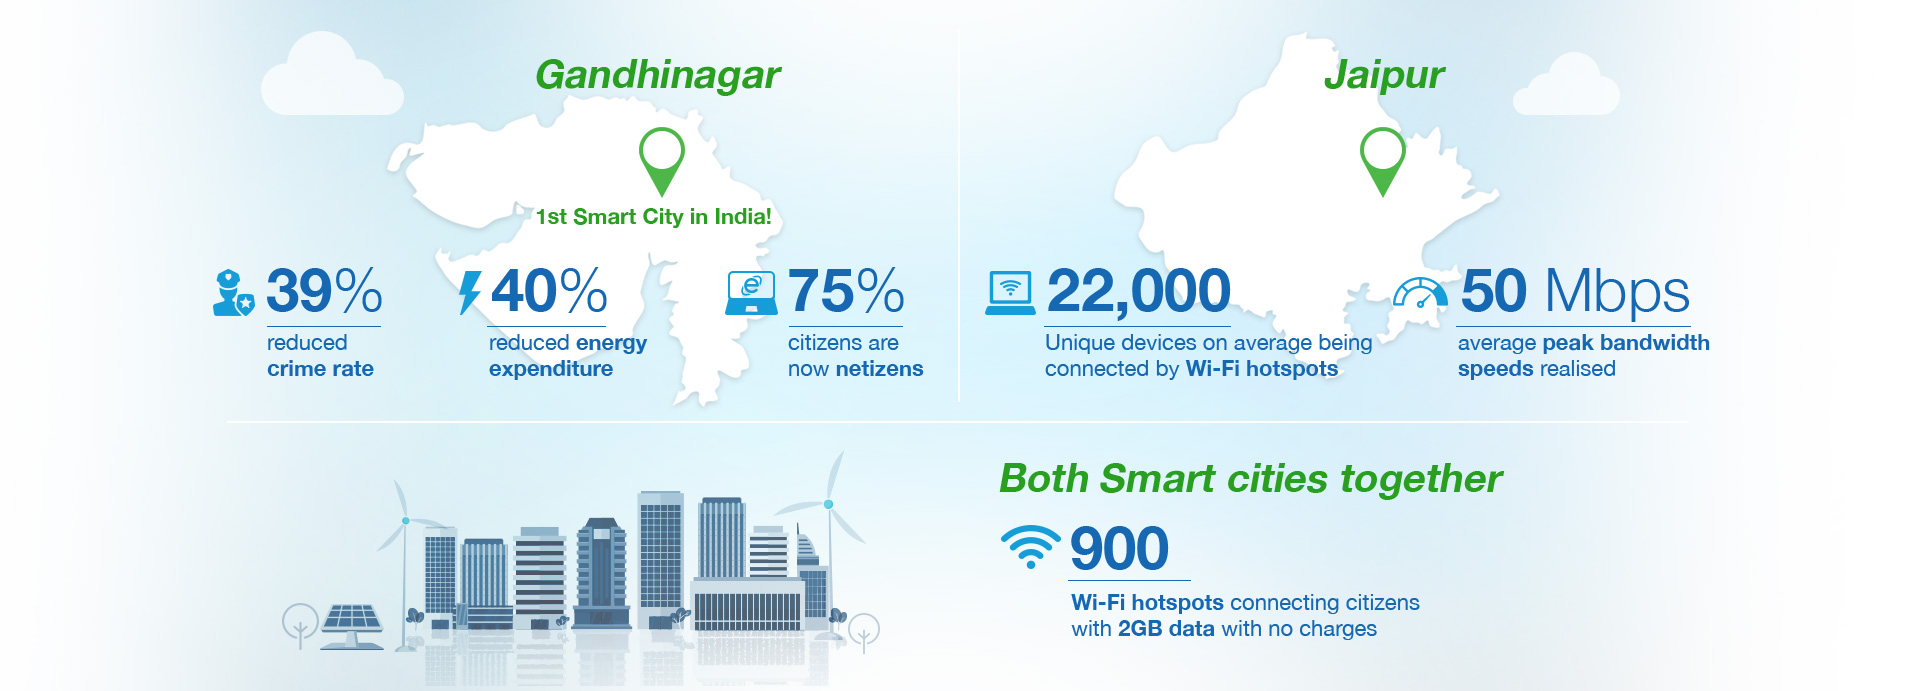 Developing Smart Cities with Smart City Projects - Sterlite Tech